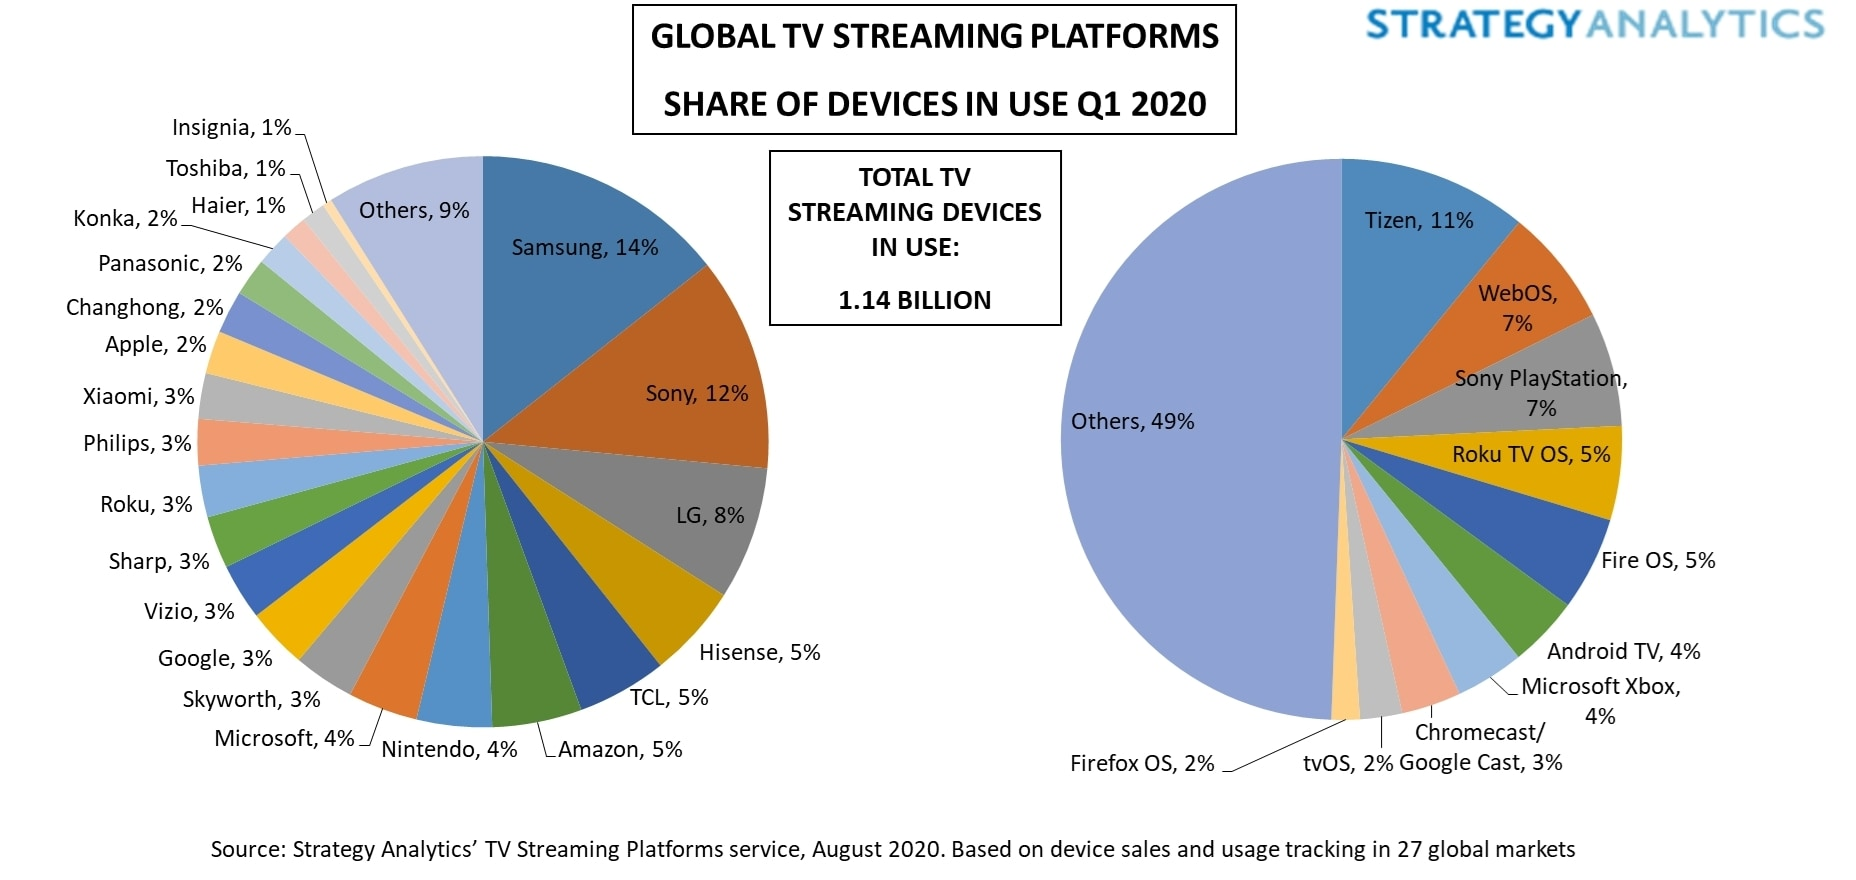 Figure_1._Global_TV_Streaming_Platforms_Share_of_Devices_in_Use_Q1_2020